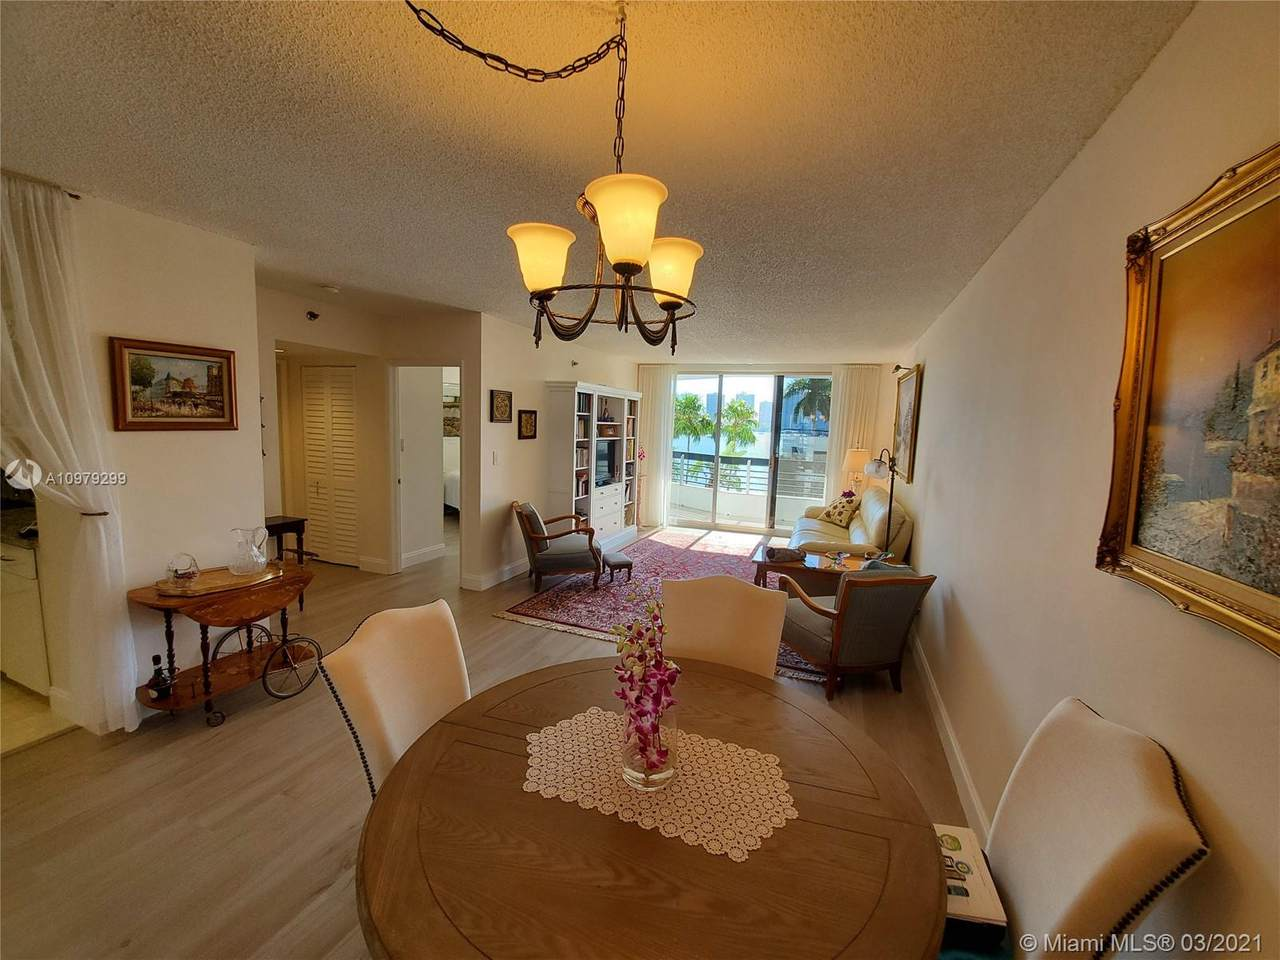 3600 Mystic Pointe Dr - Photo 1